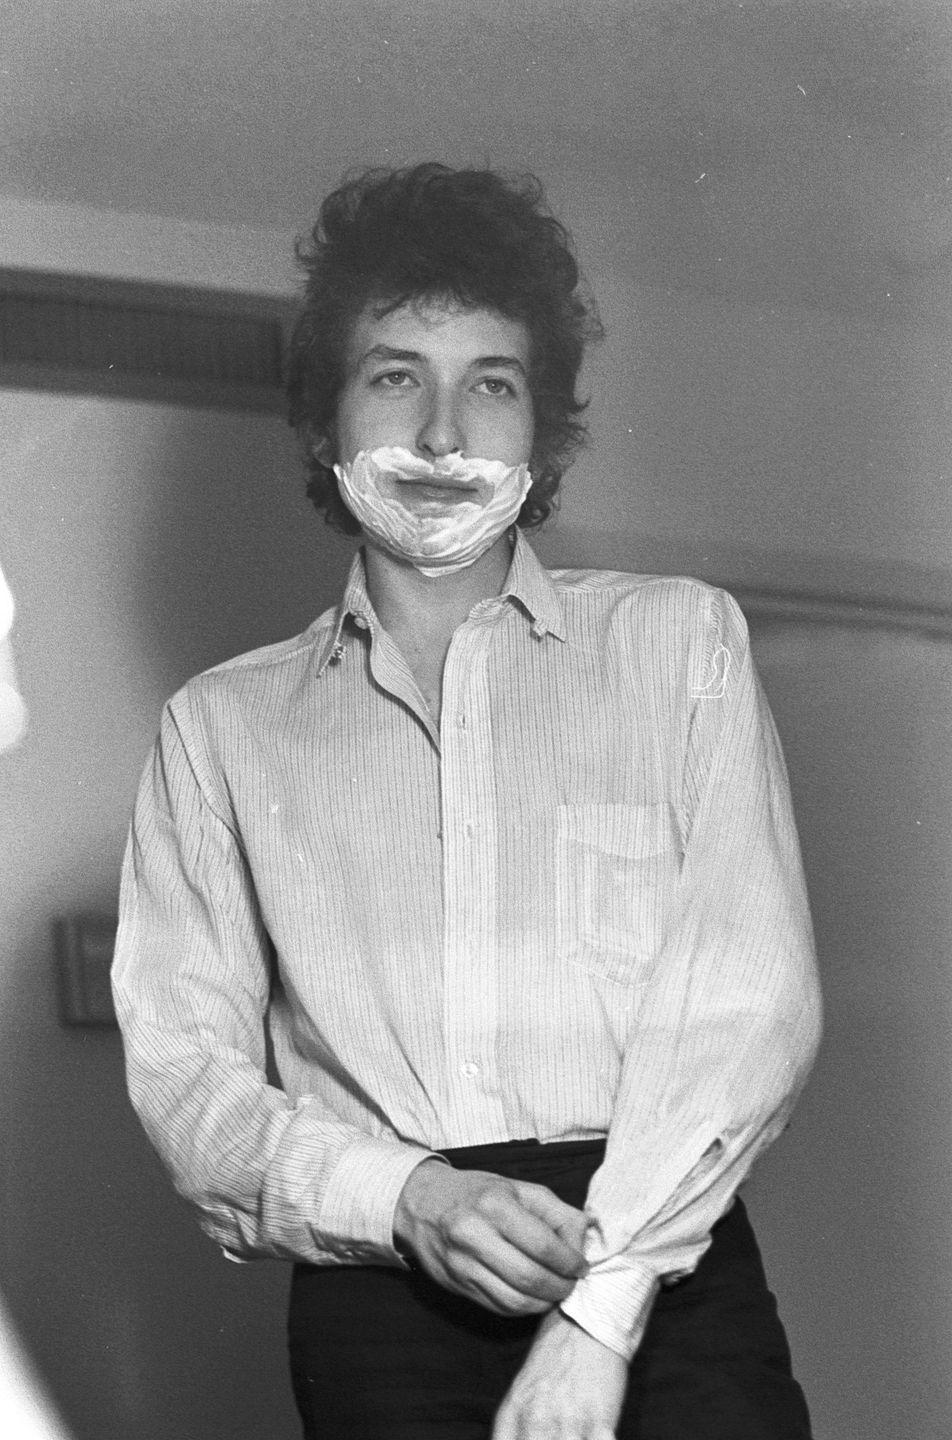 <p>Bob Dylan with shaving cream on his face, backstage at an unknown venue, 1964.</p>